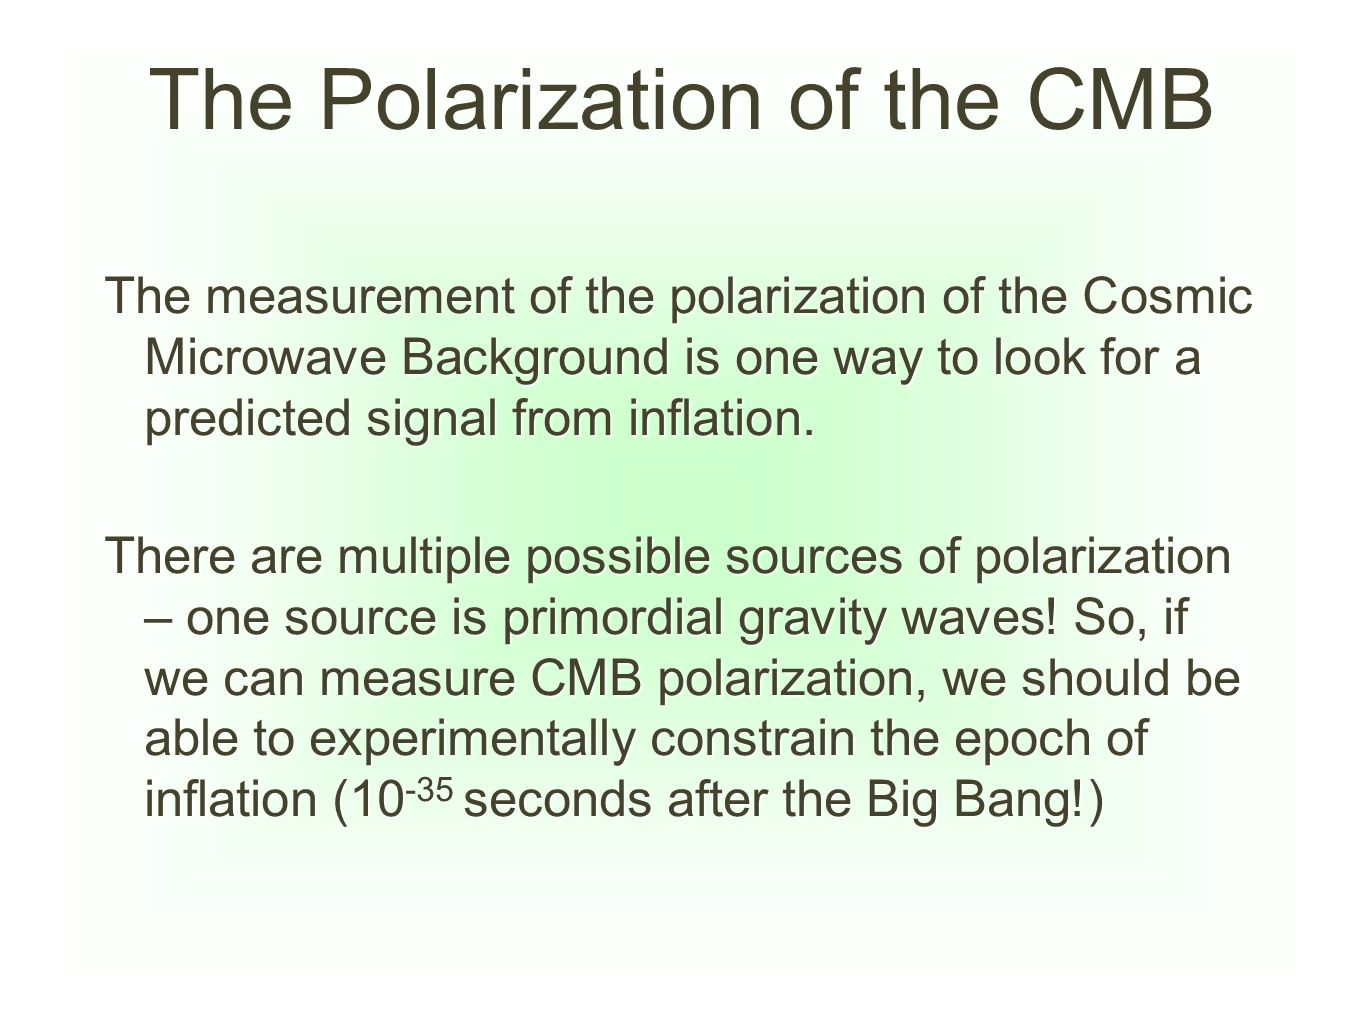 The Polarization of the CMB